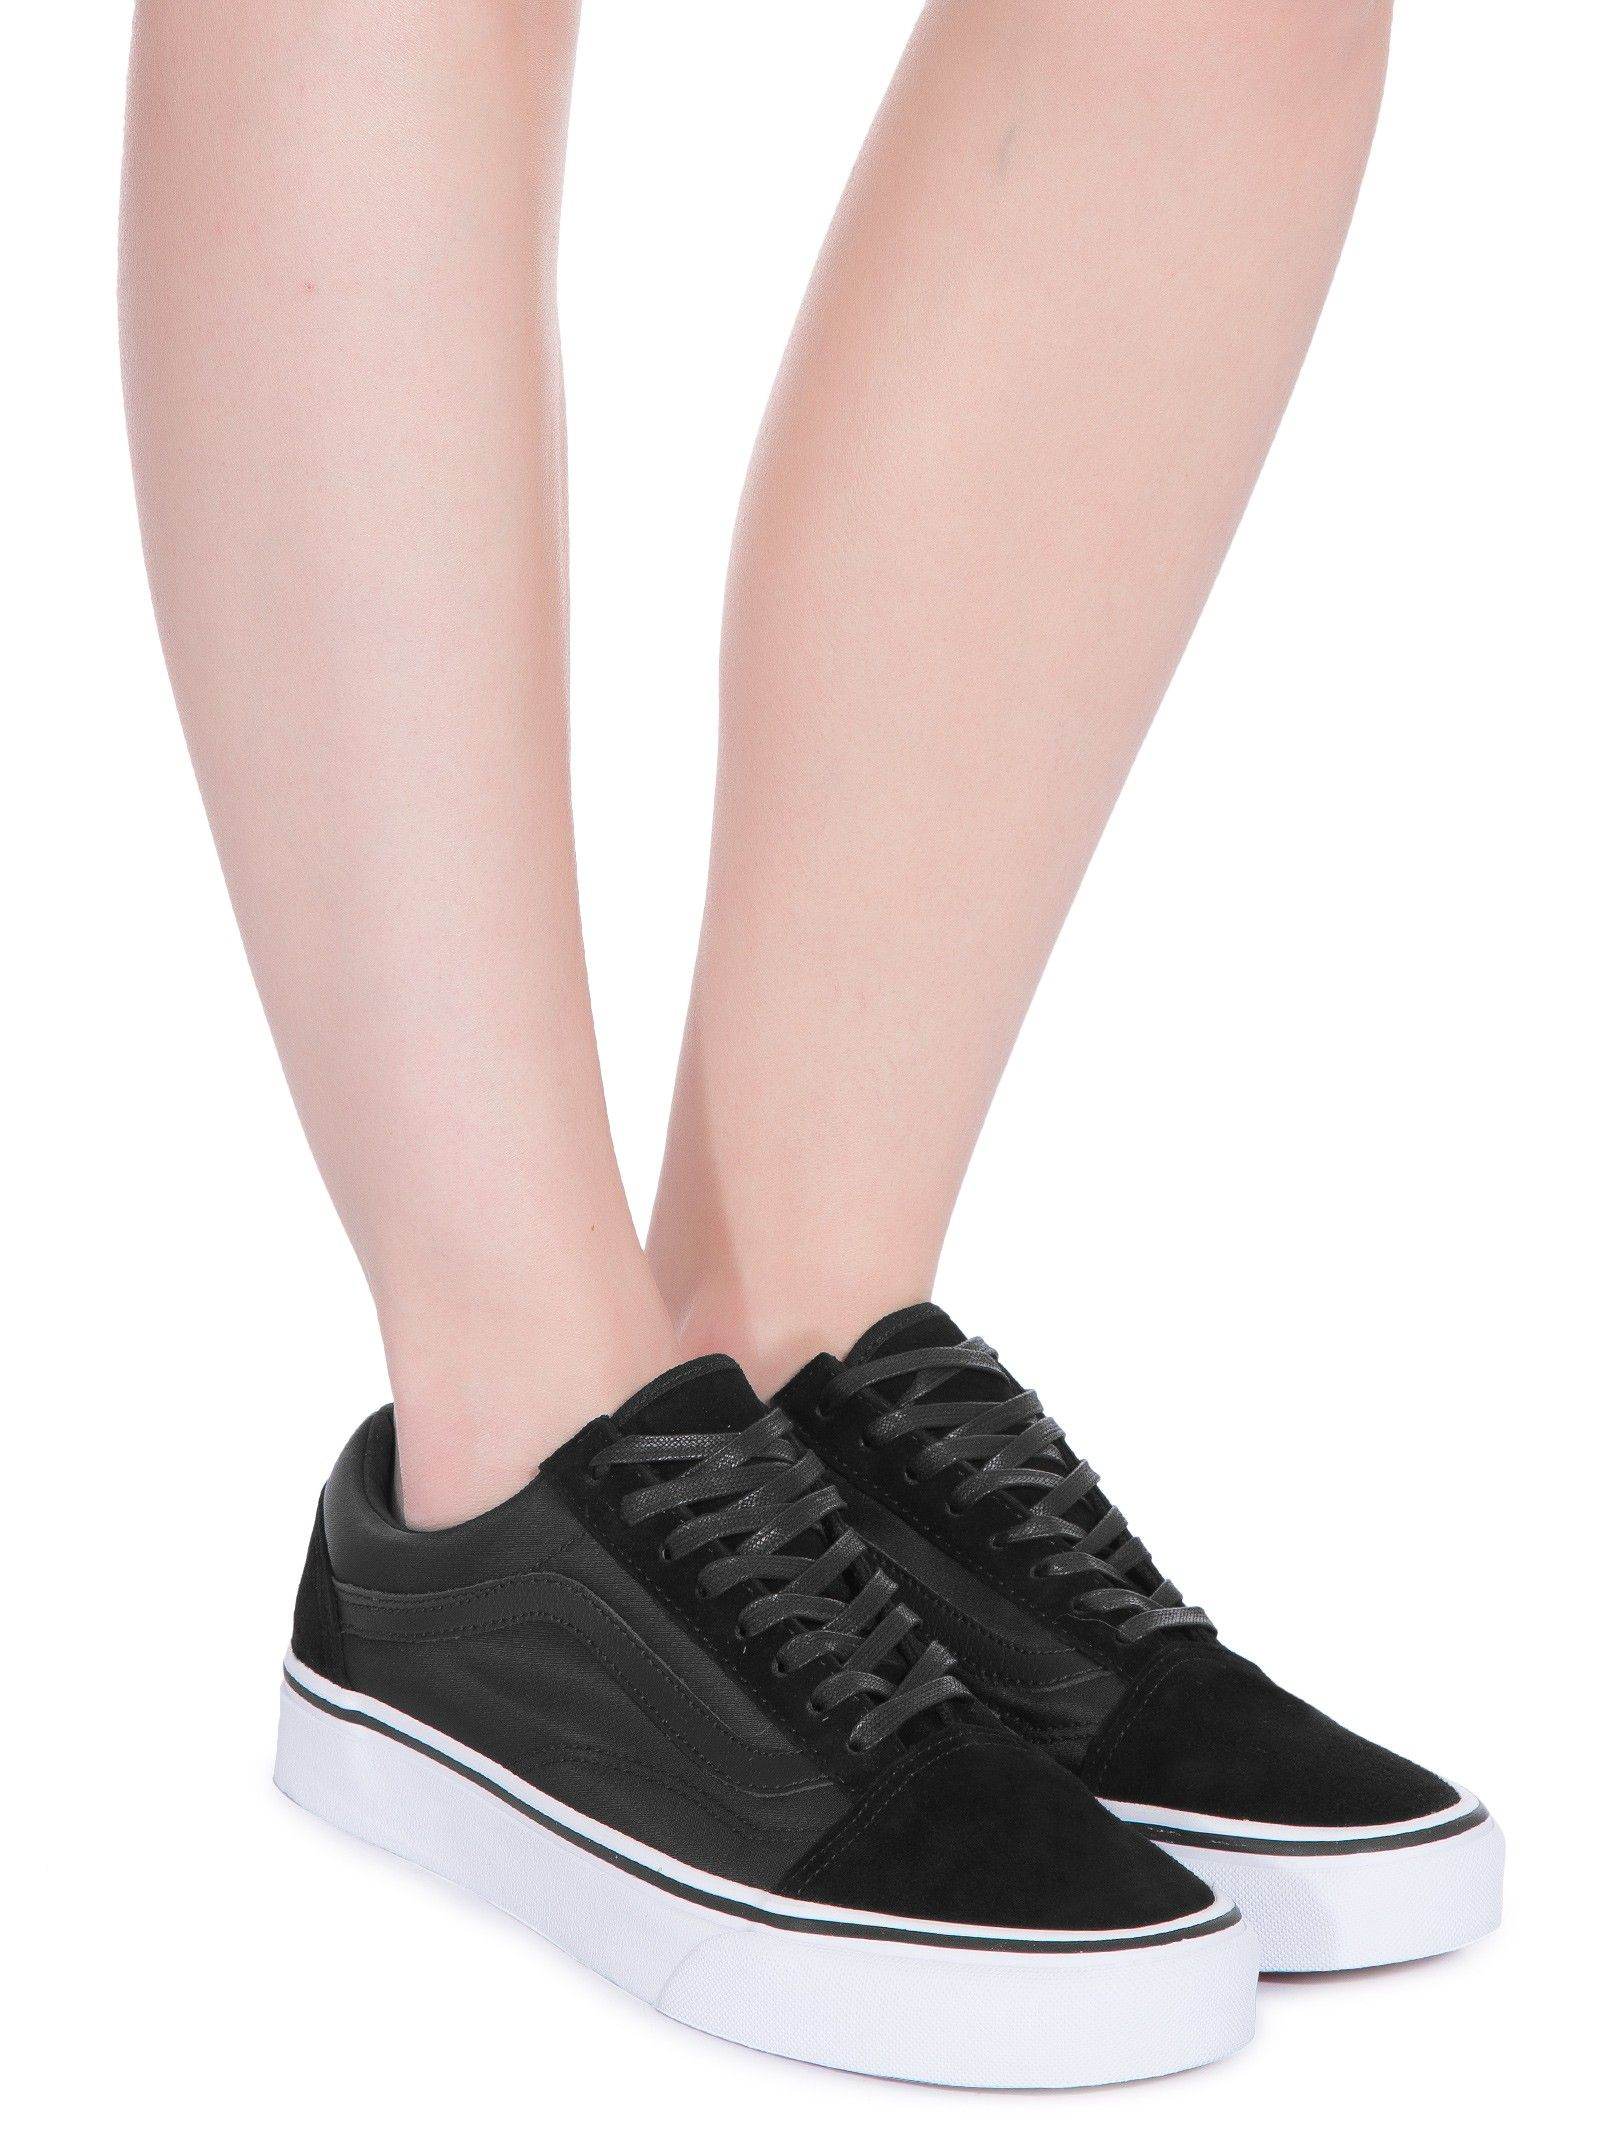 f34efbdd2a1 Buy 2 OFF ANY vans old skool feminino CASE AND GET 70% OFF!